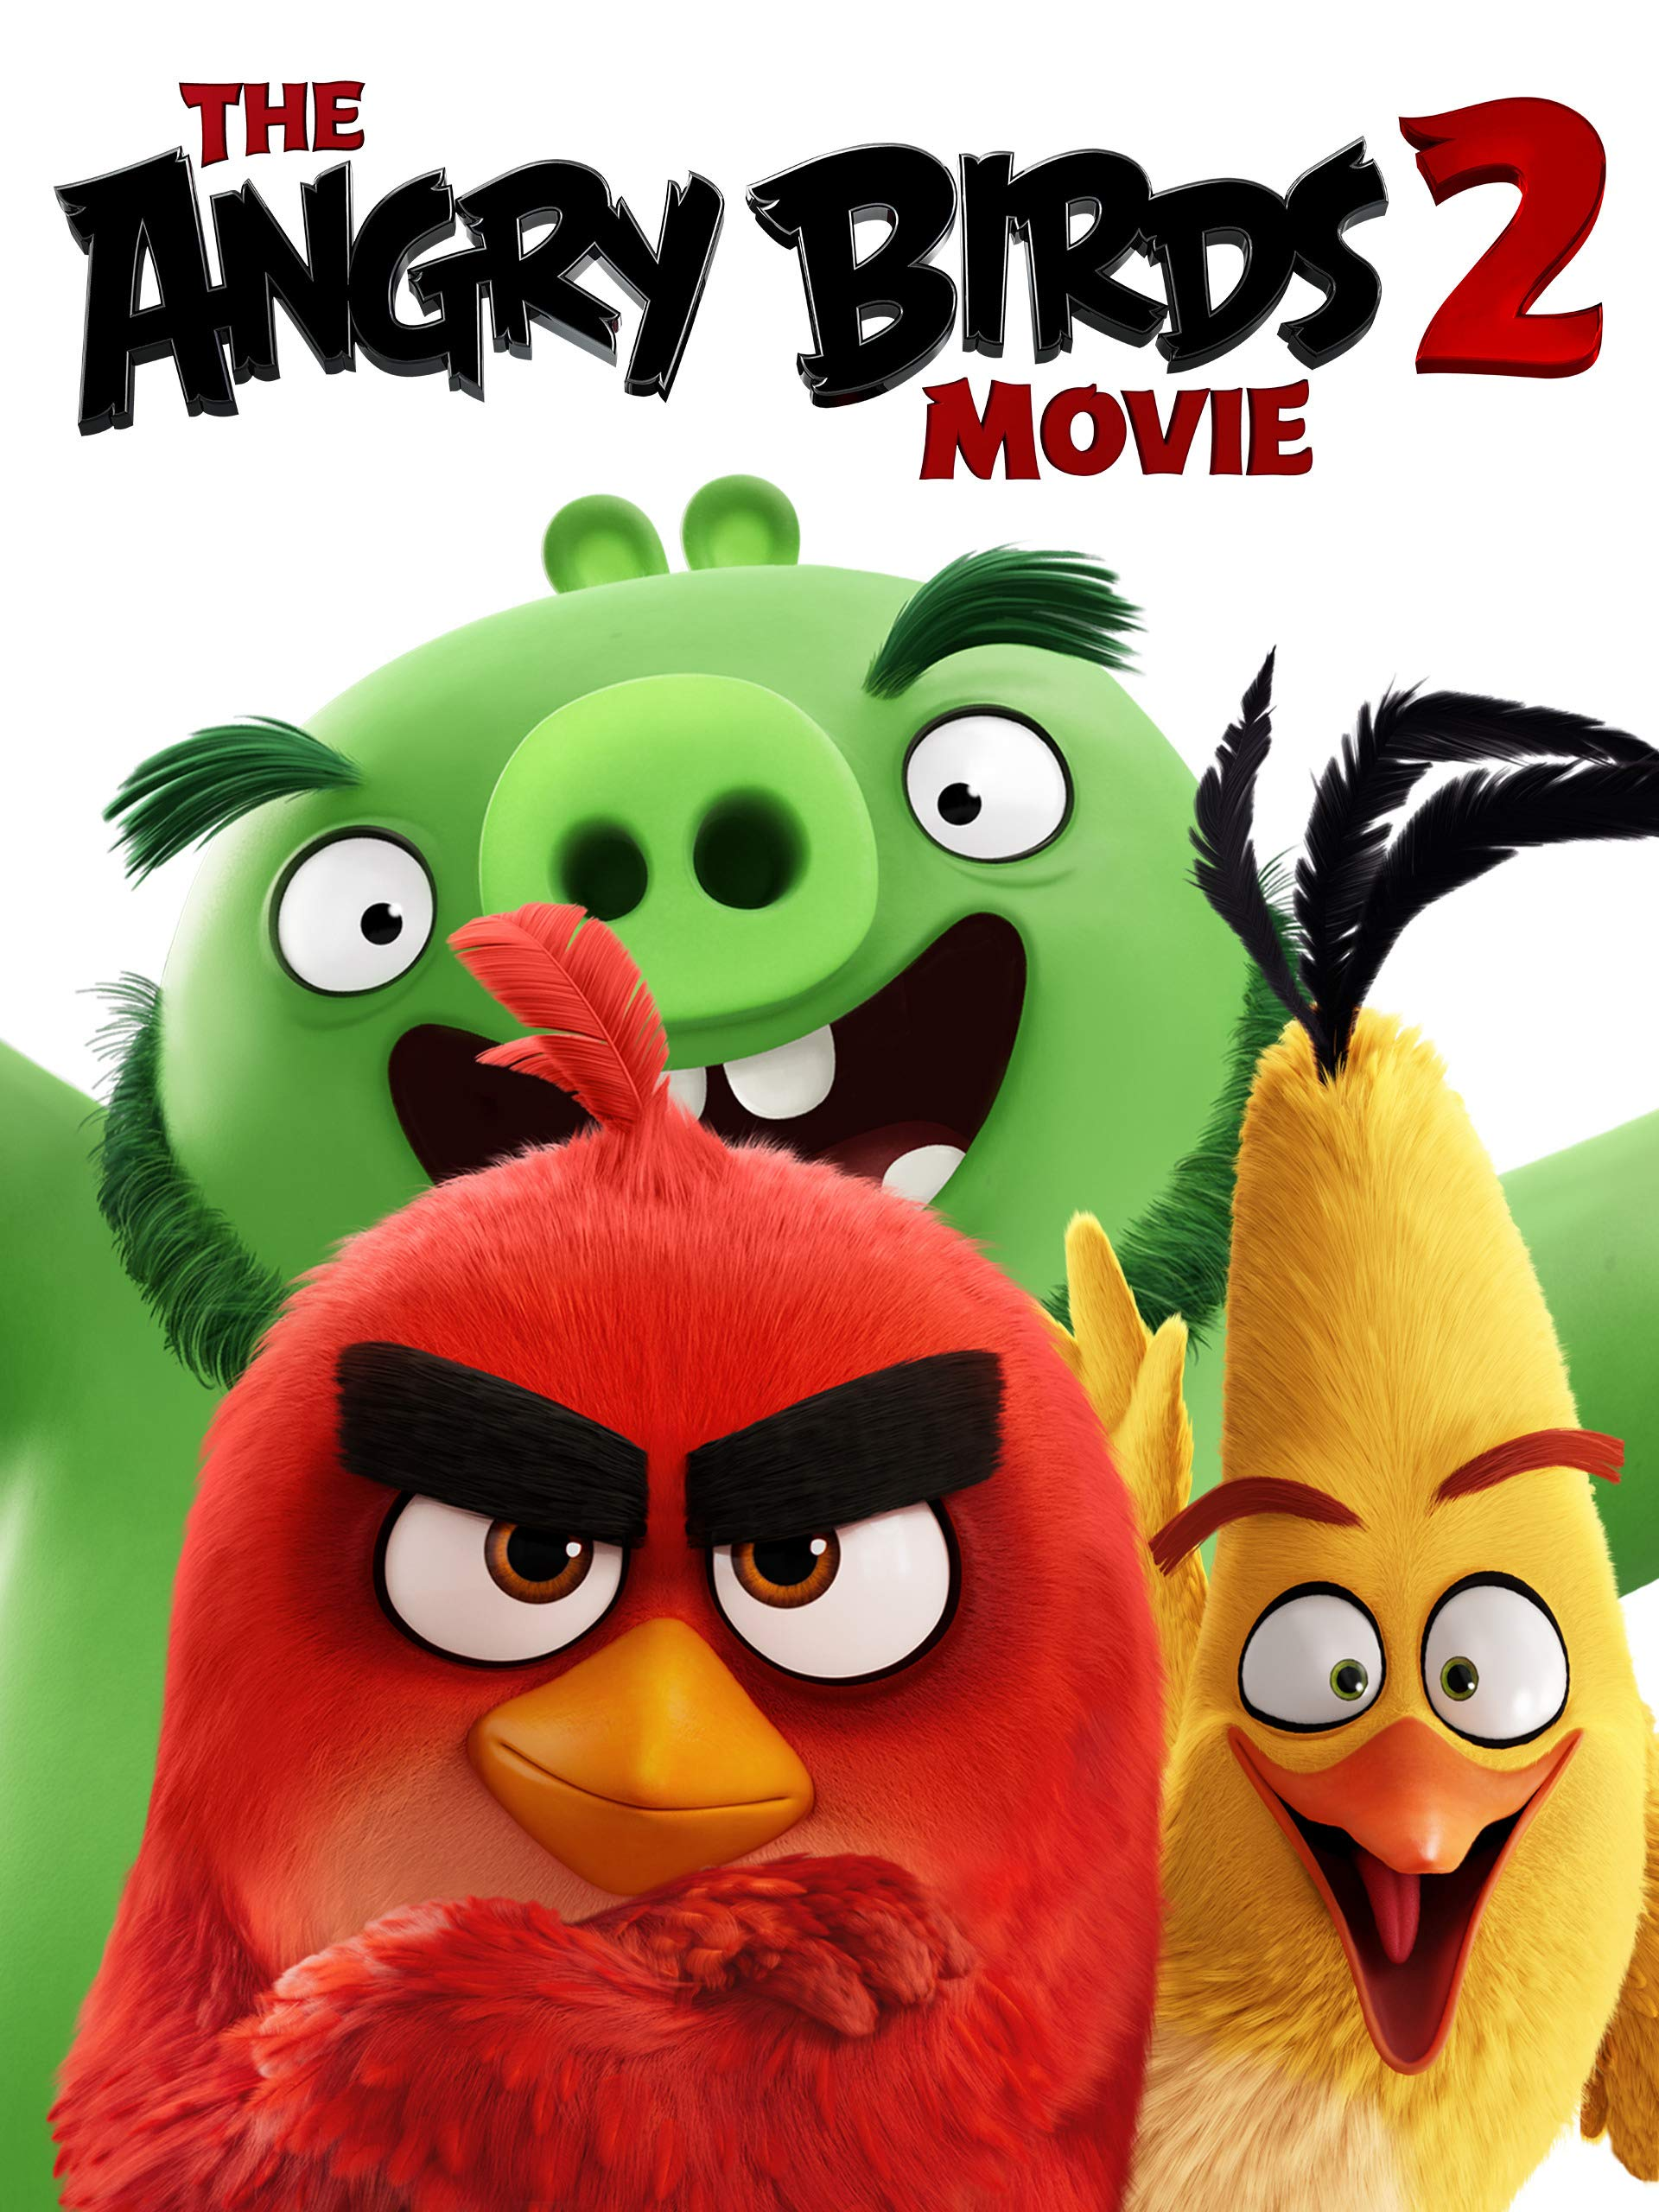 Watch The Angry Birds Movie 2 Prime Video